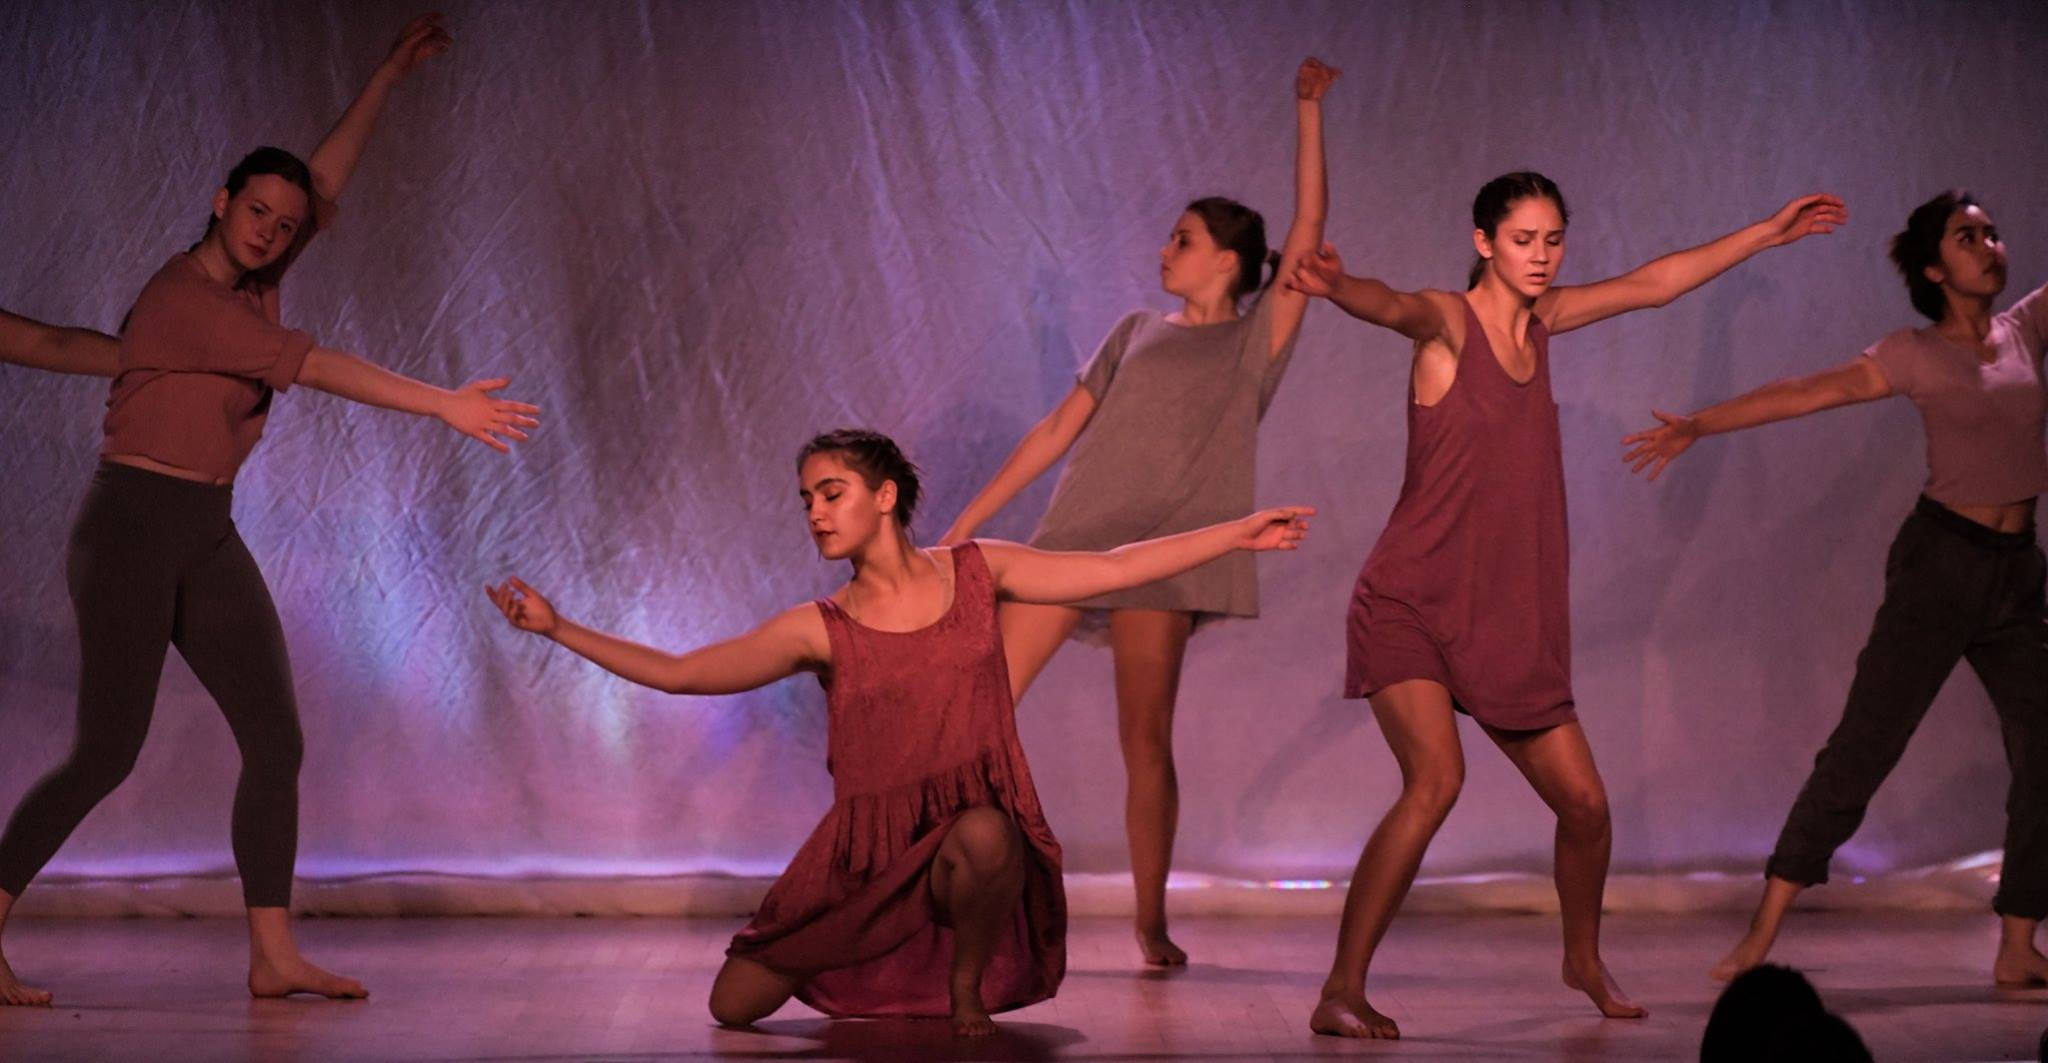 A contemporary dance performance in the theatre